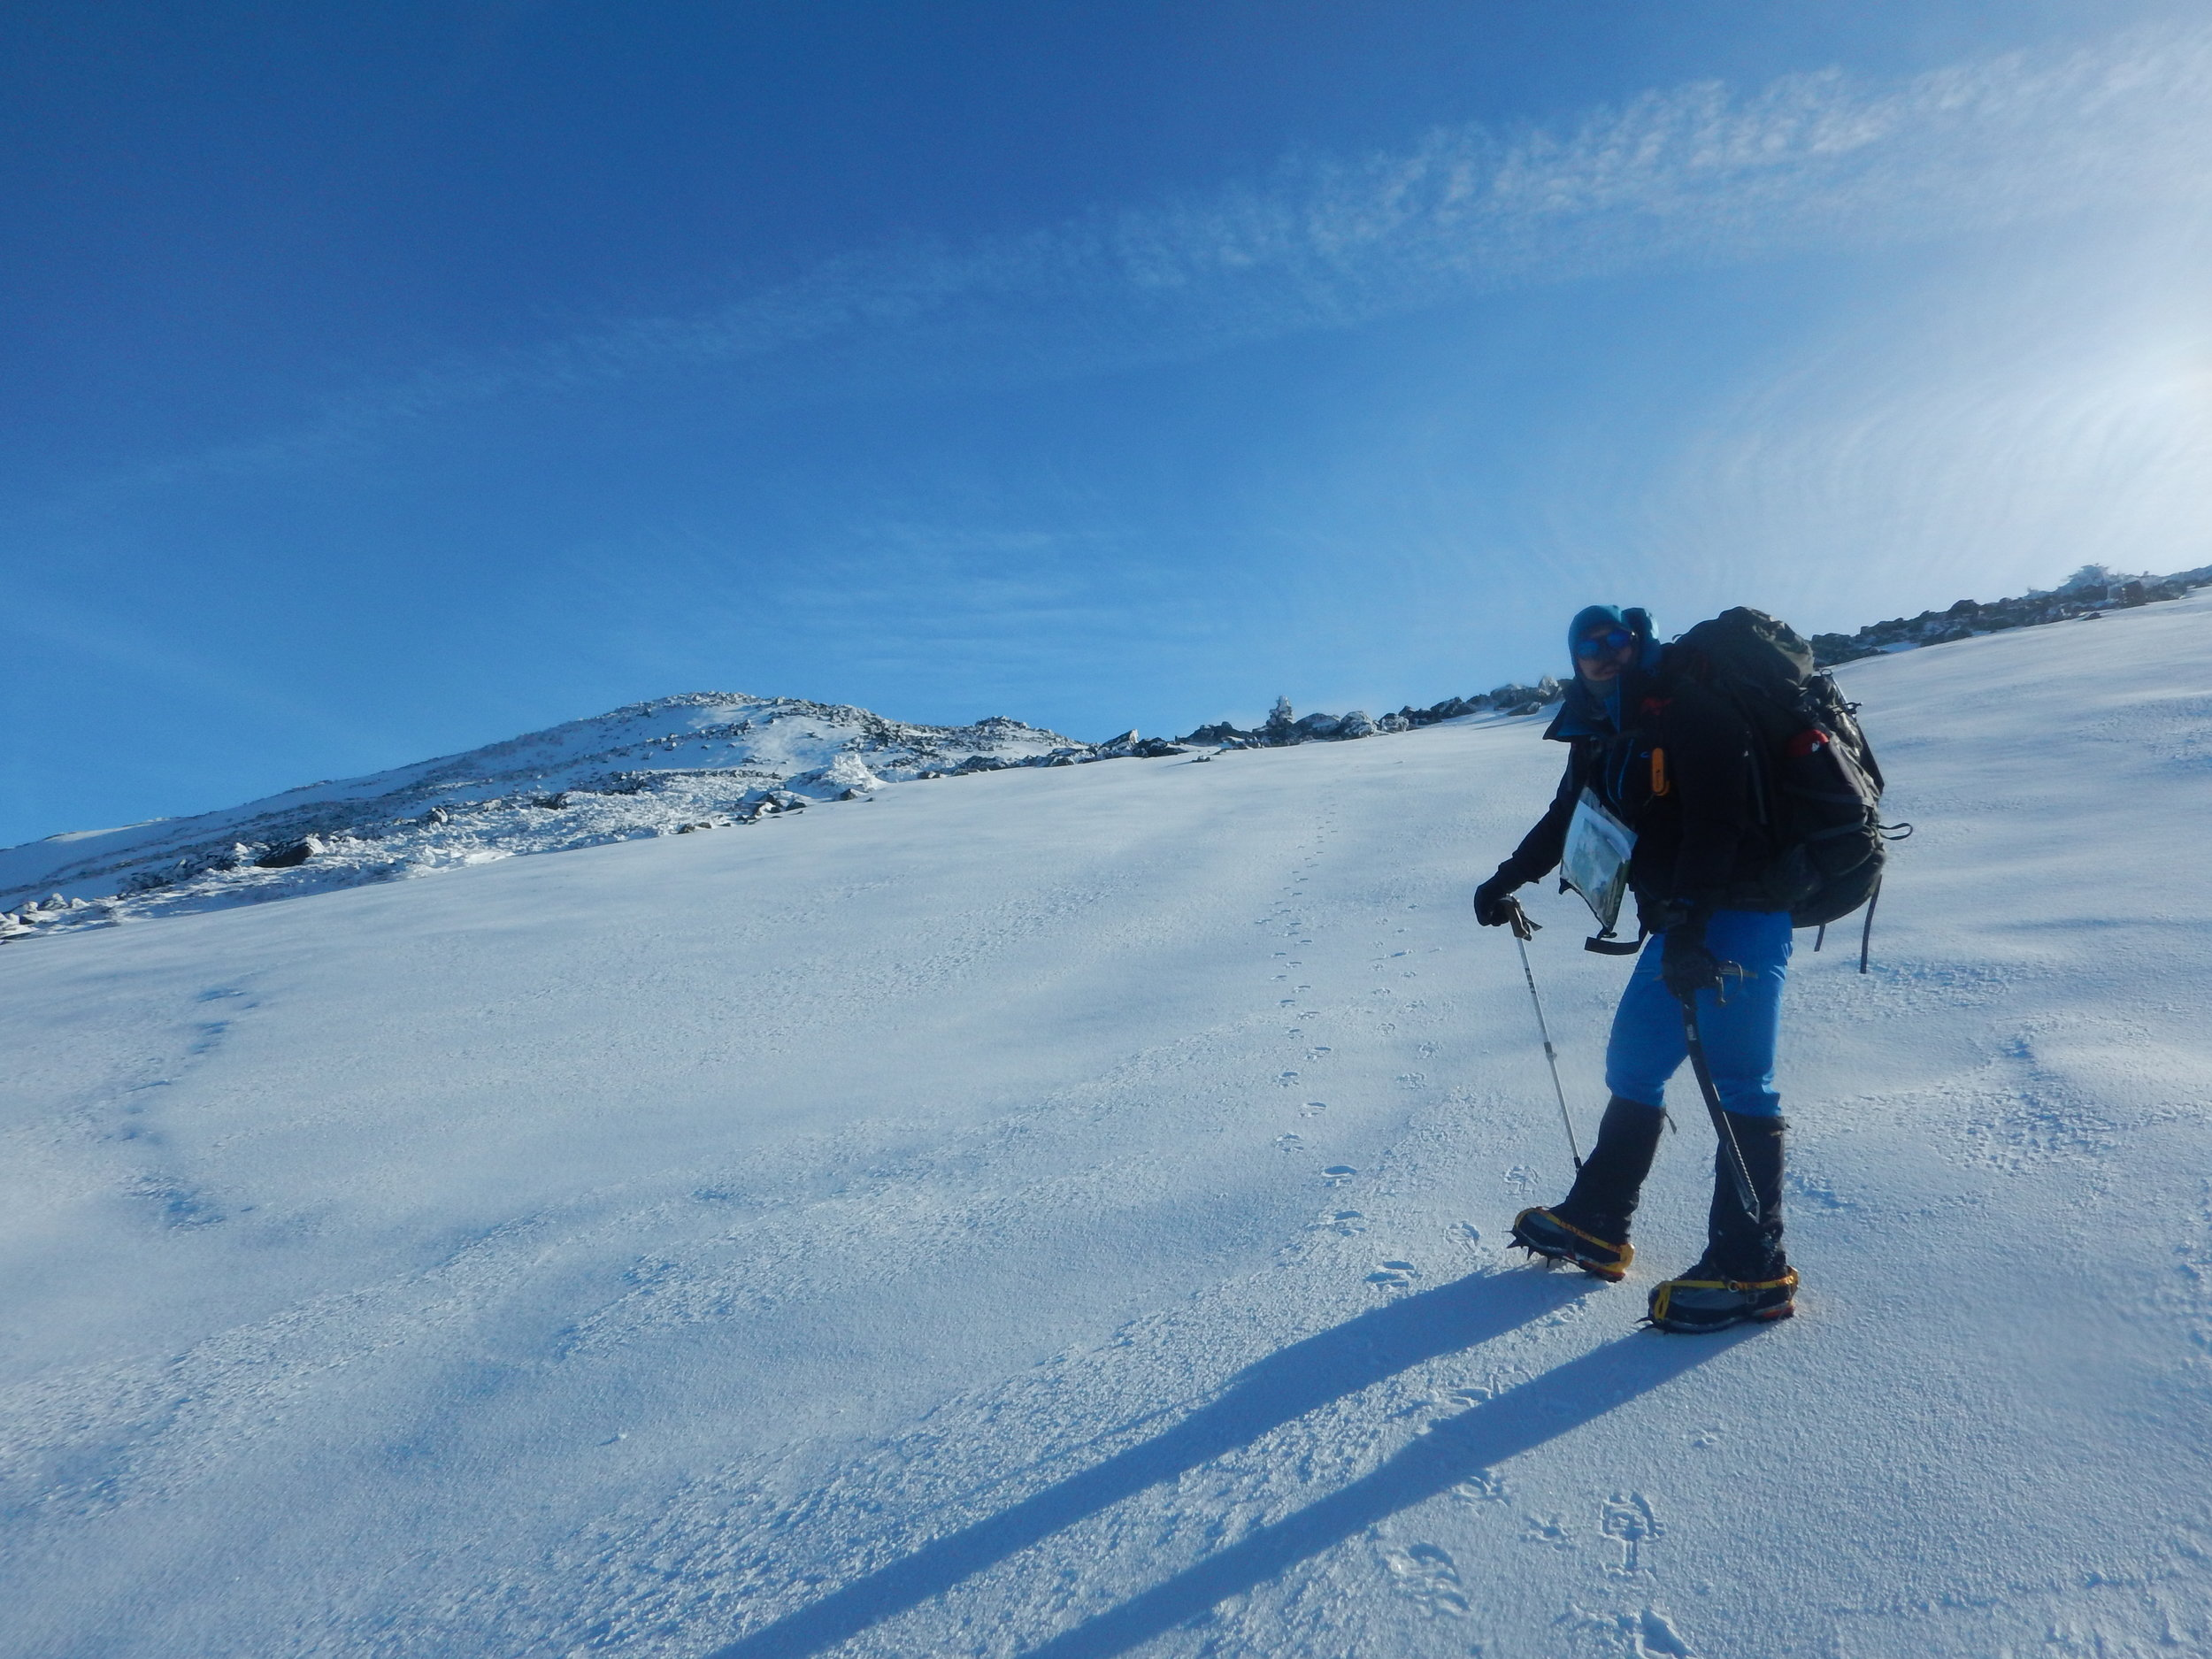 Crossing the Snow Field